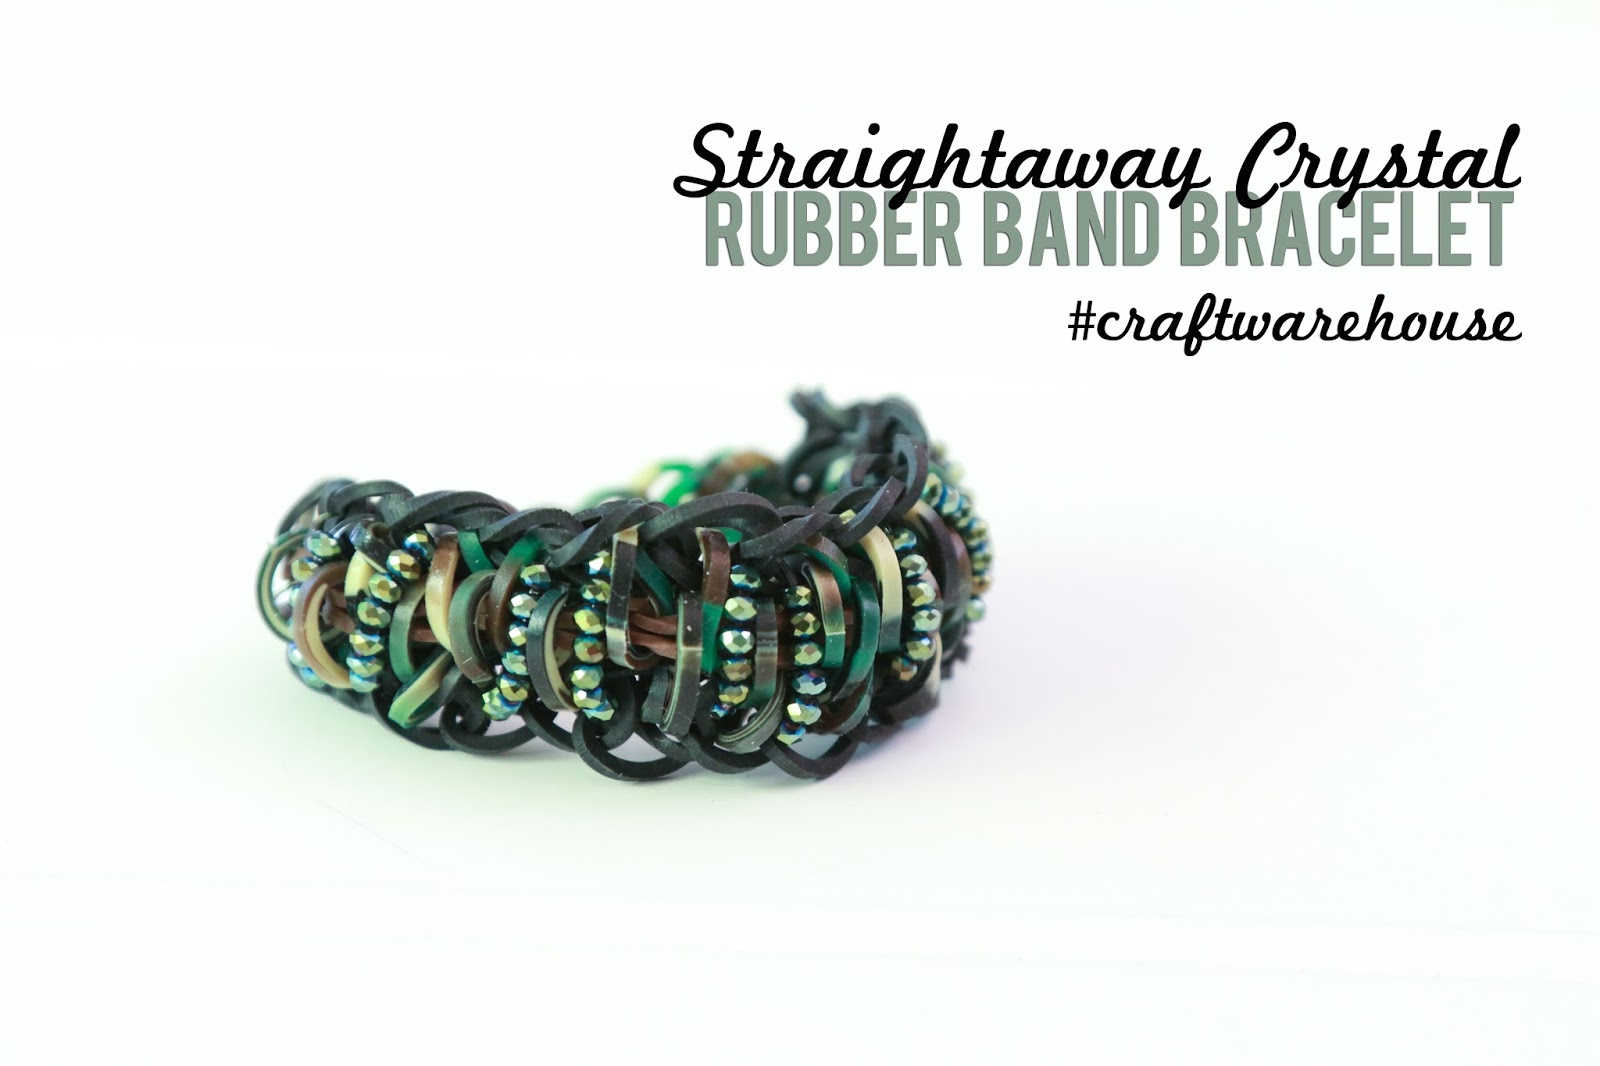 Straightaway Crystal Rubber Band Bracelet @craftsavvy #craftwarehouse #rubberbandbracelets #loombands #diy